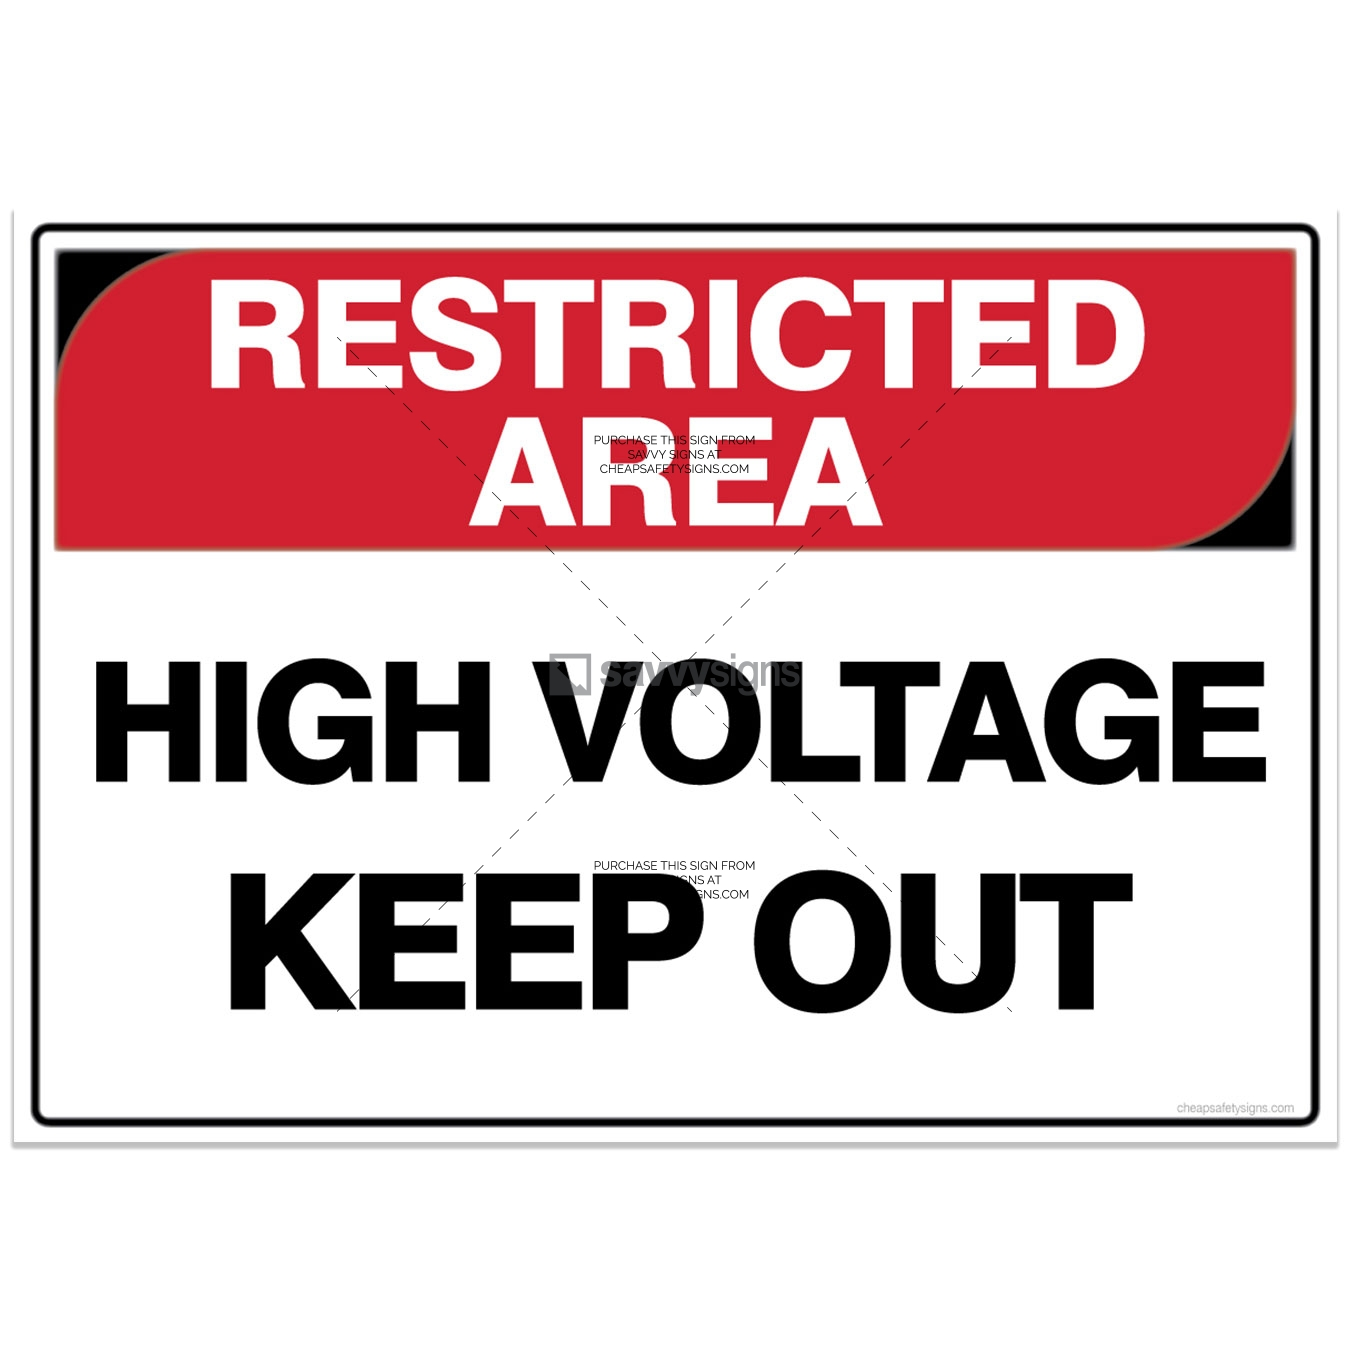 SSRES3018-RESTRICTED-AREA-Workplace-Safety-Signs_Savvy-Signs_v2